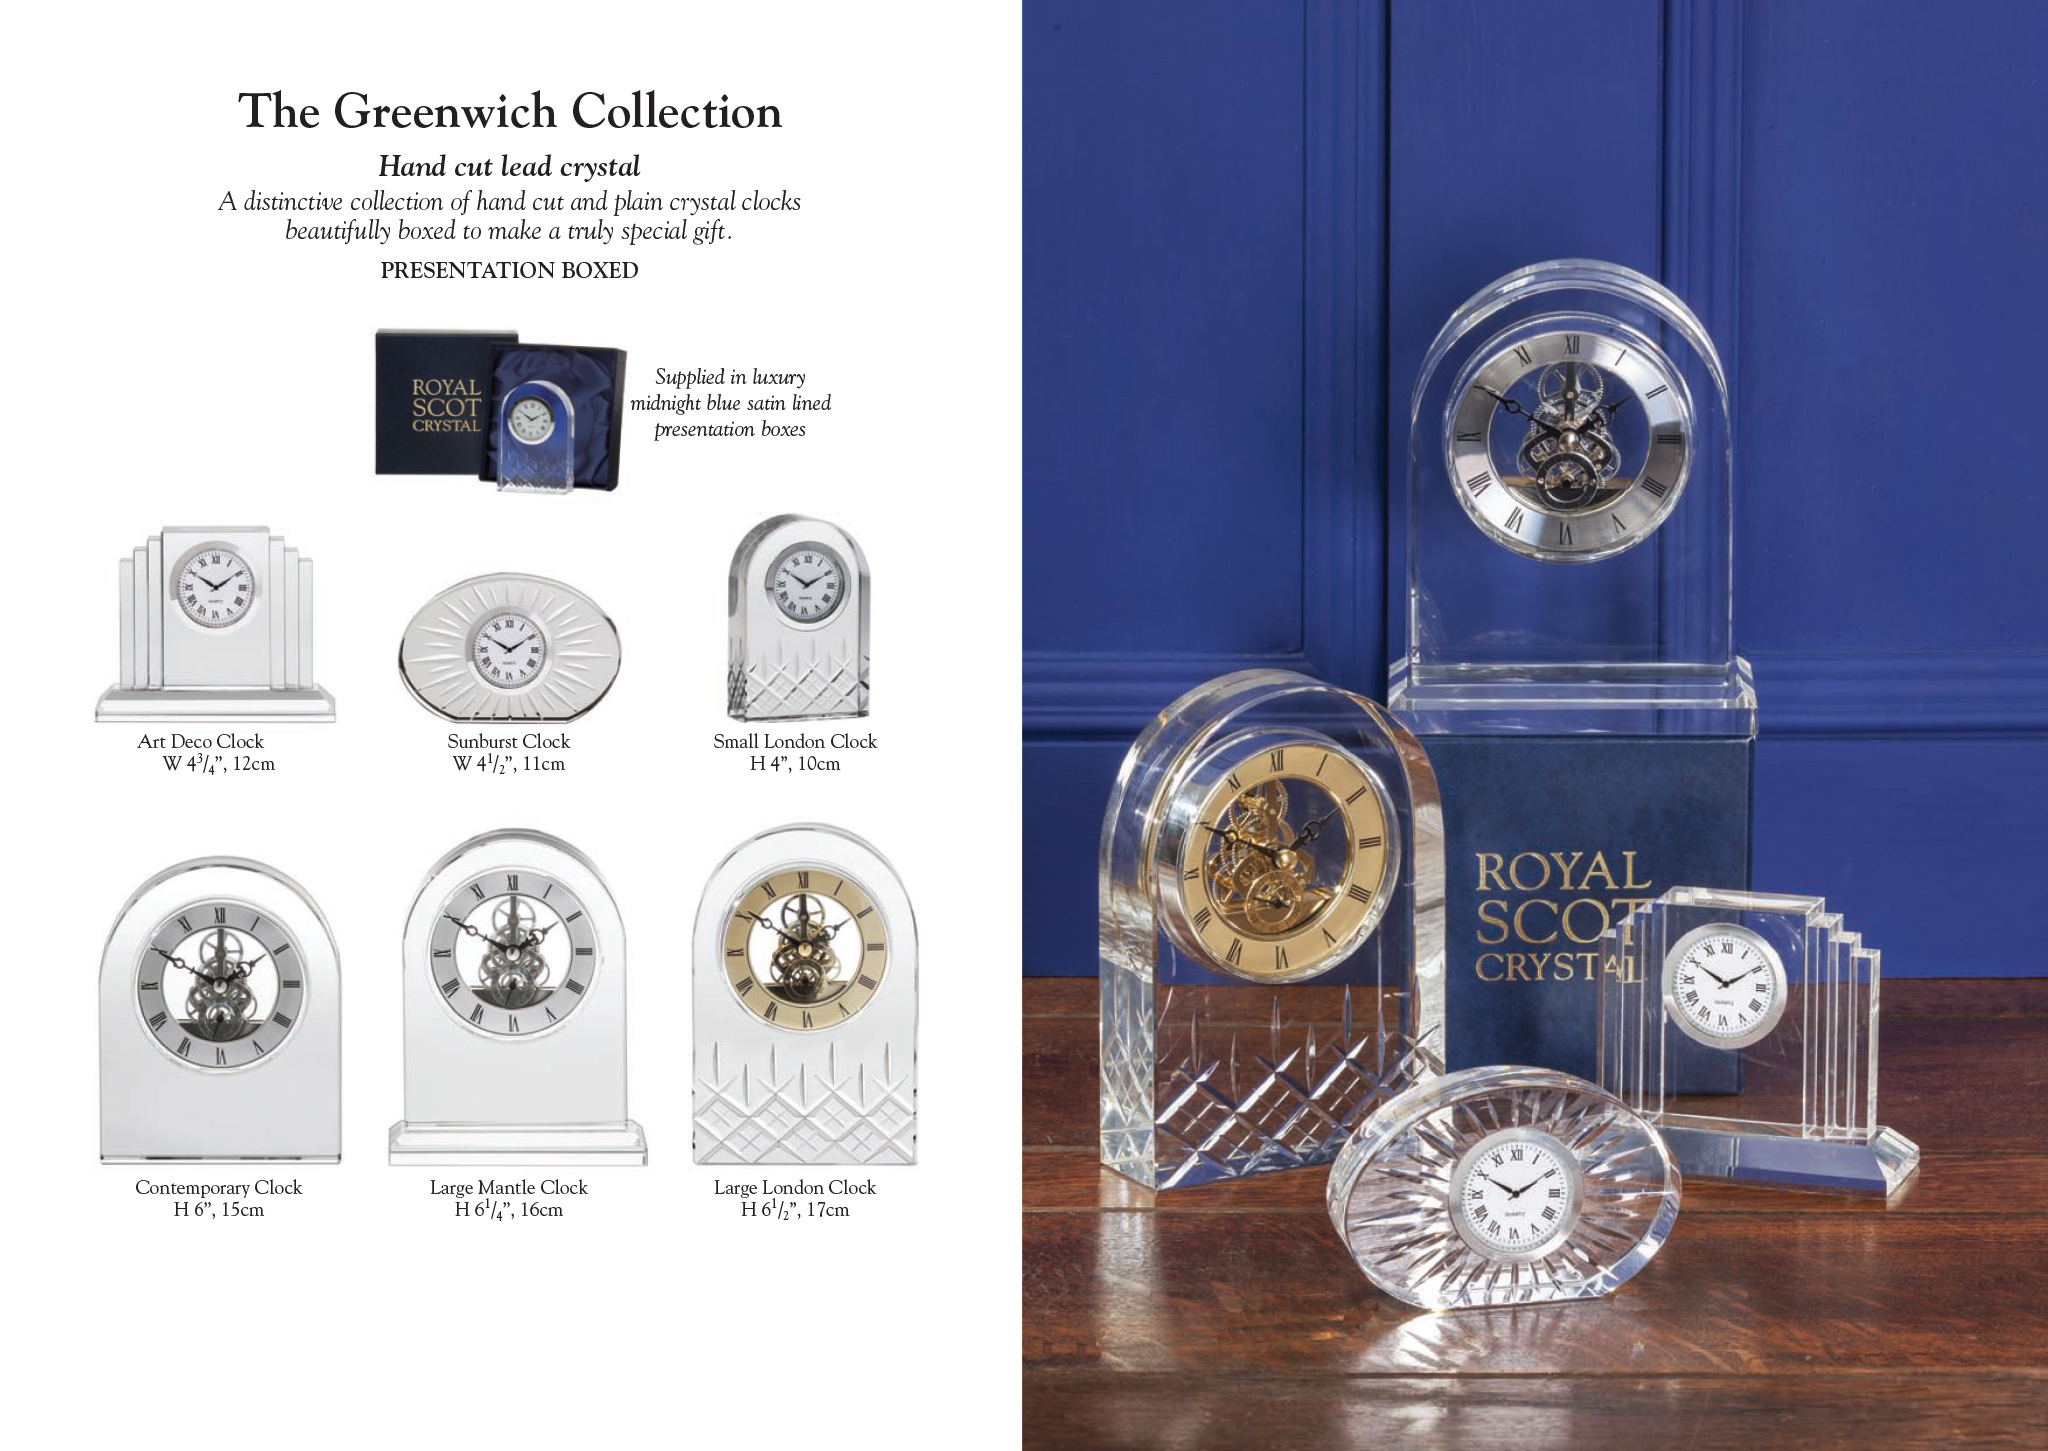 Royal Scot Crystal - The Greenwich Collection